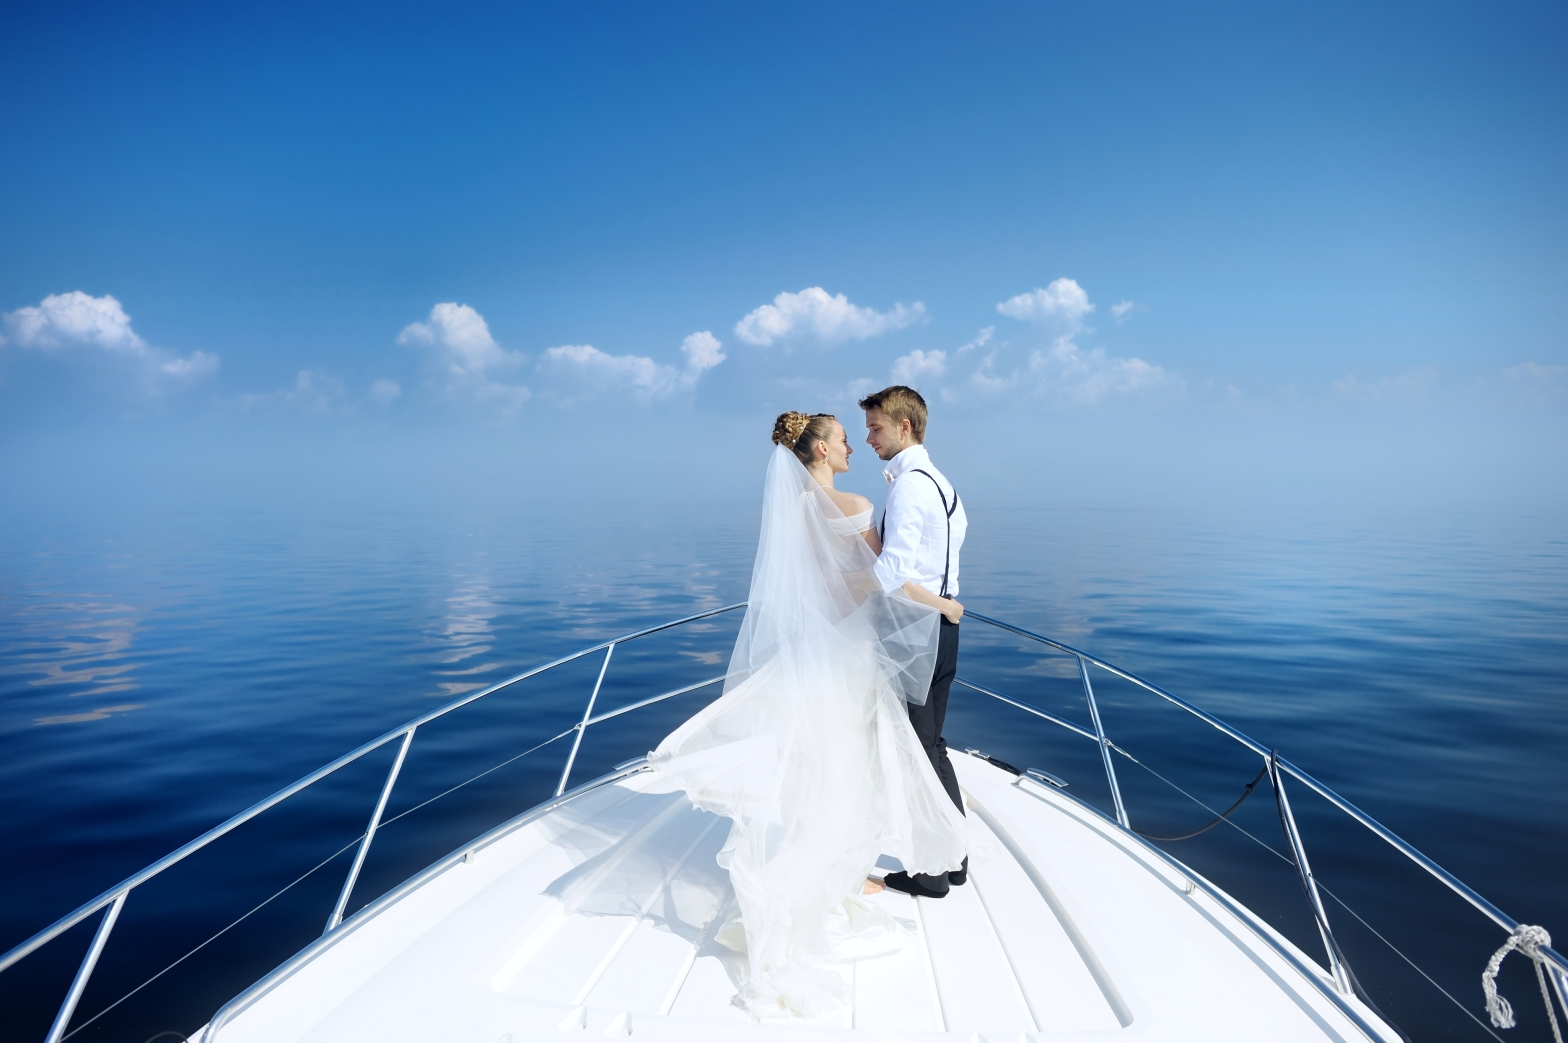 Married couple on yacht in the blue sea